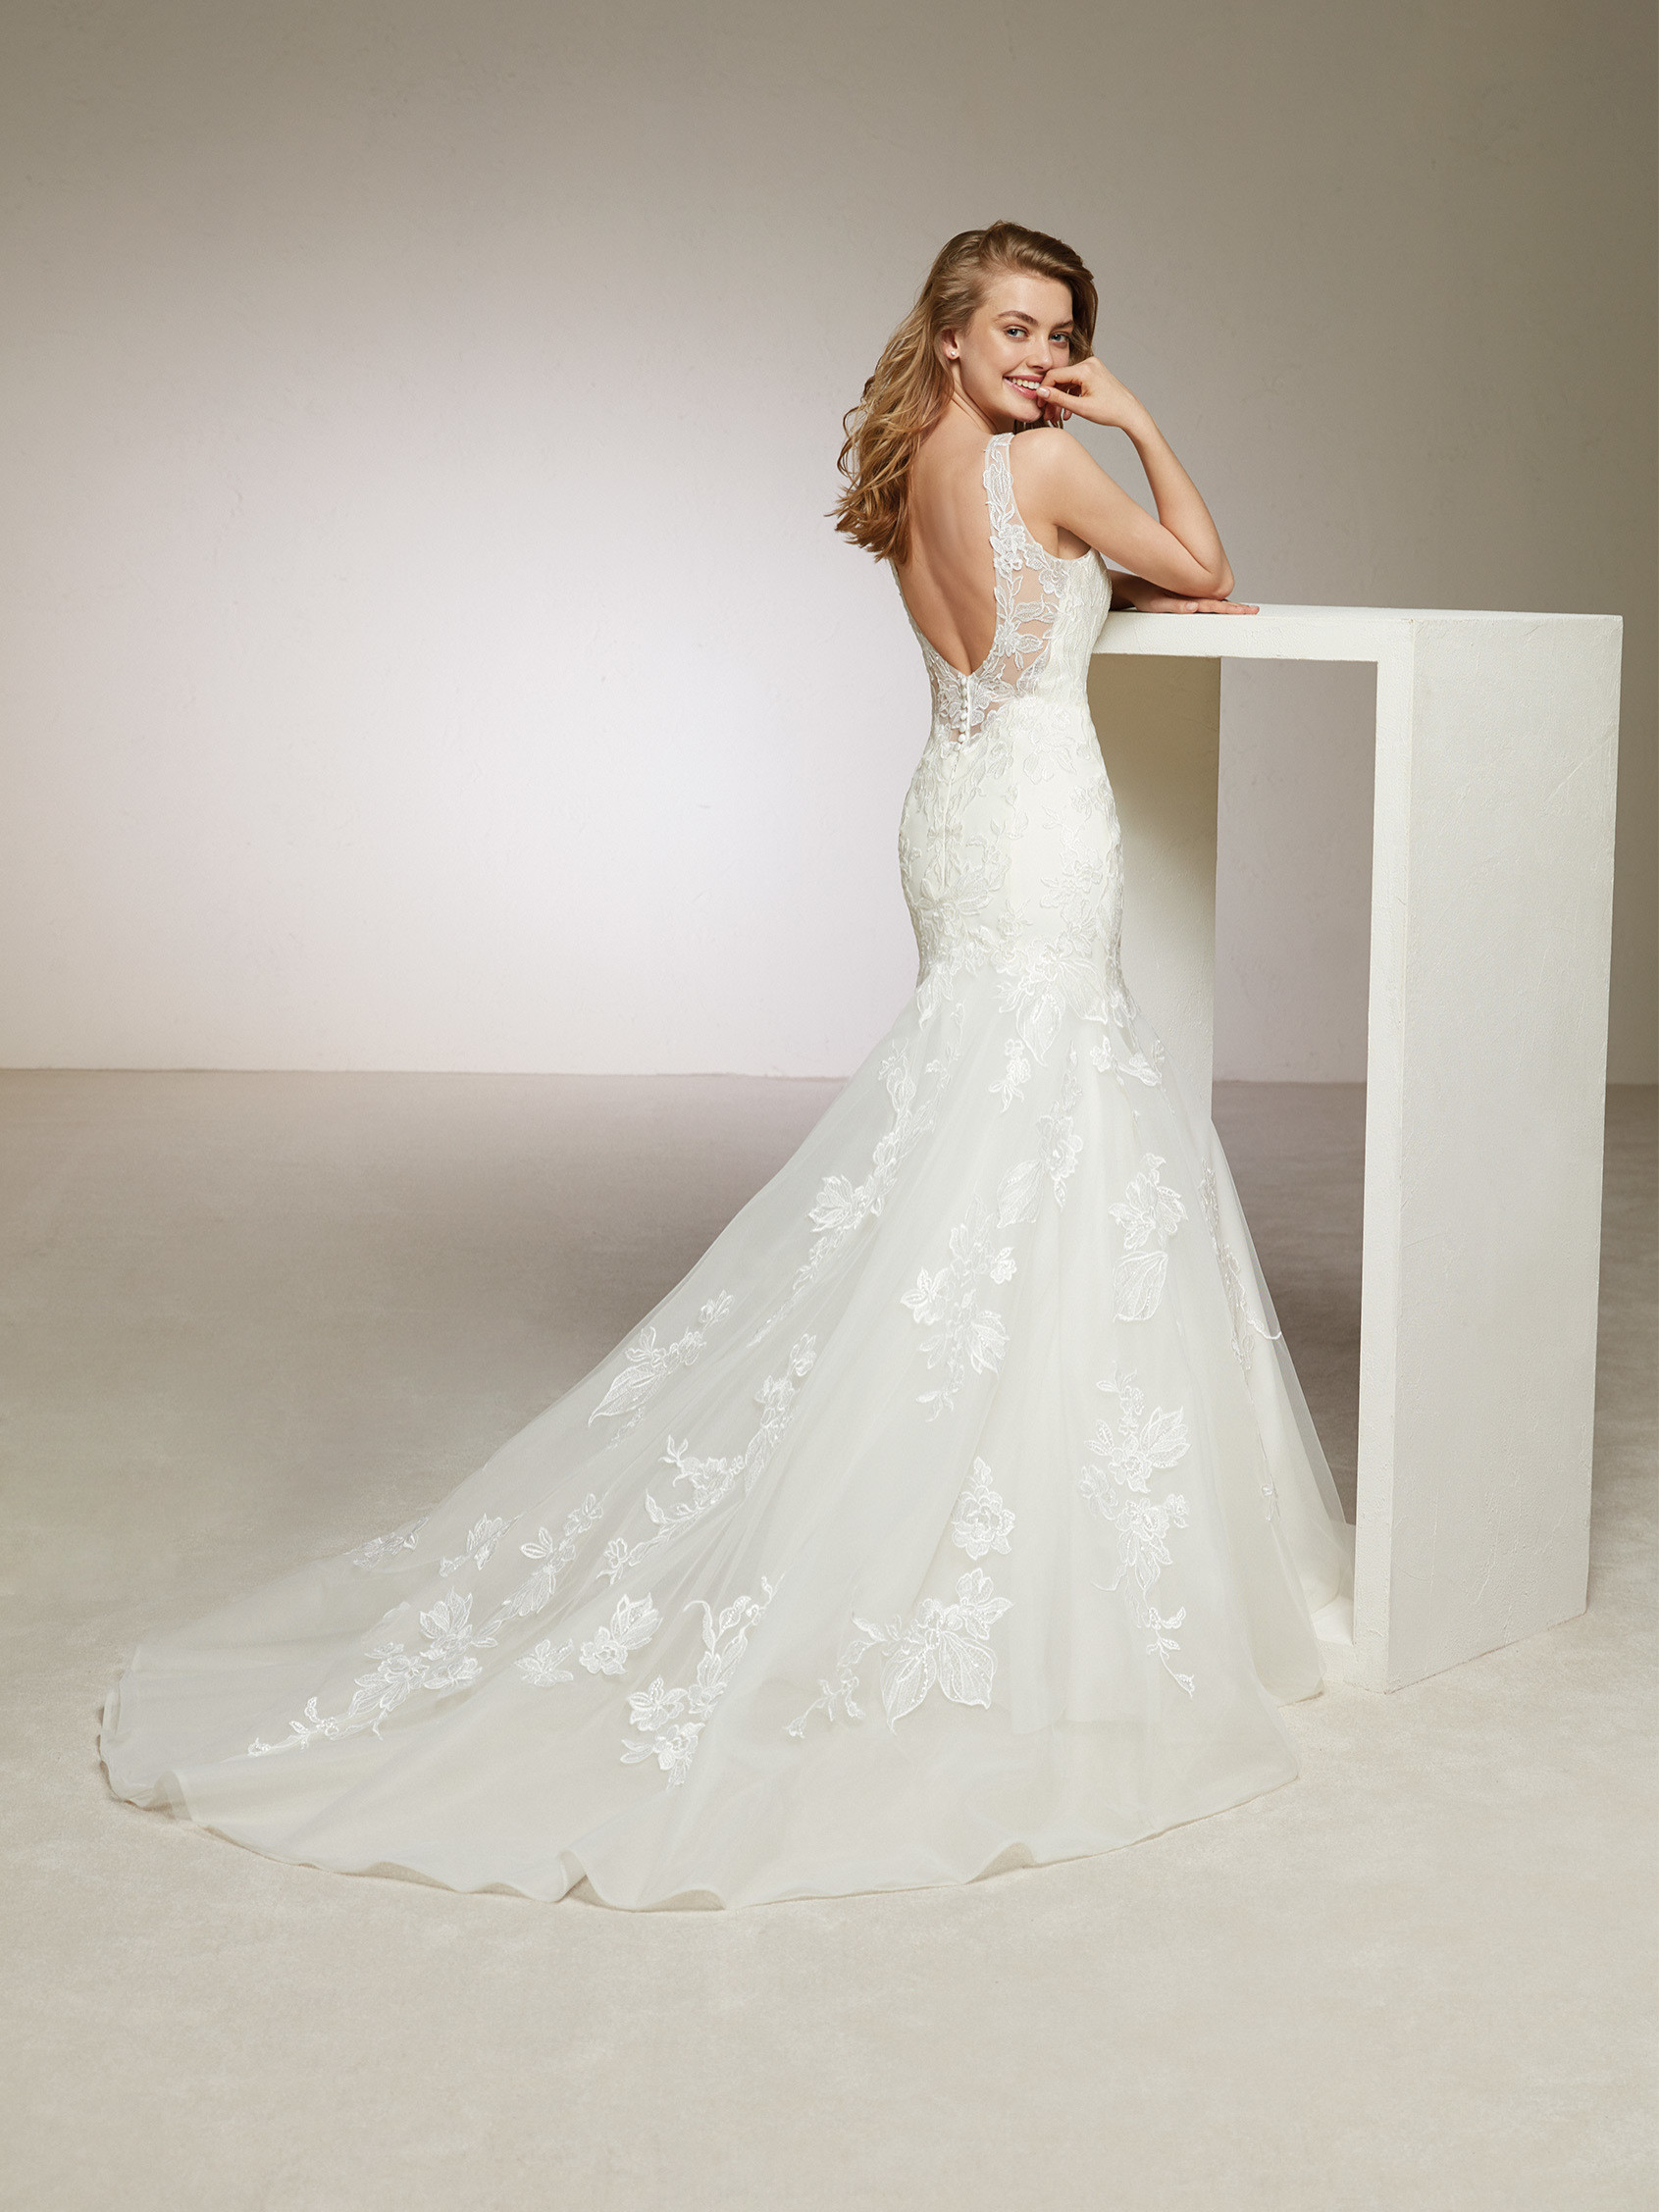 wedding dresses sale – Fashion dresses